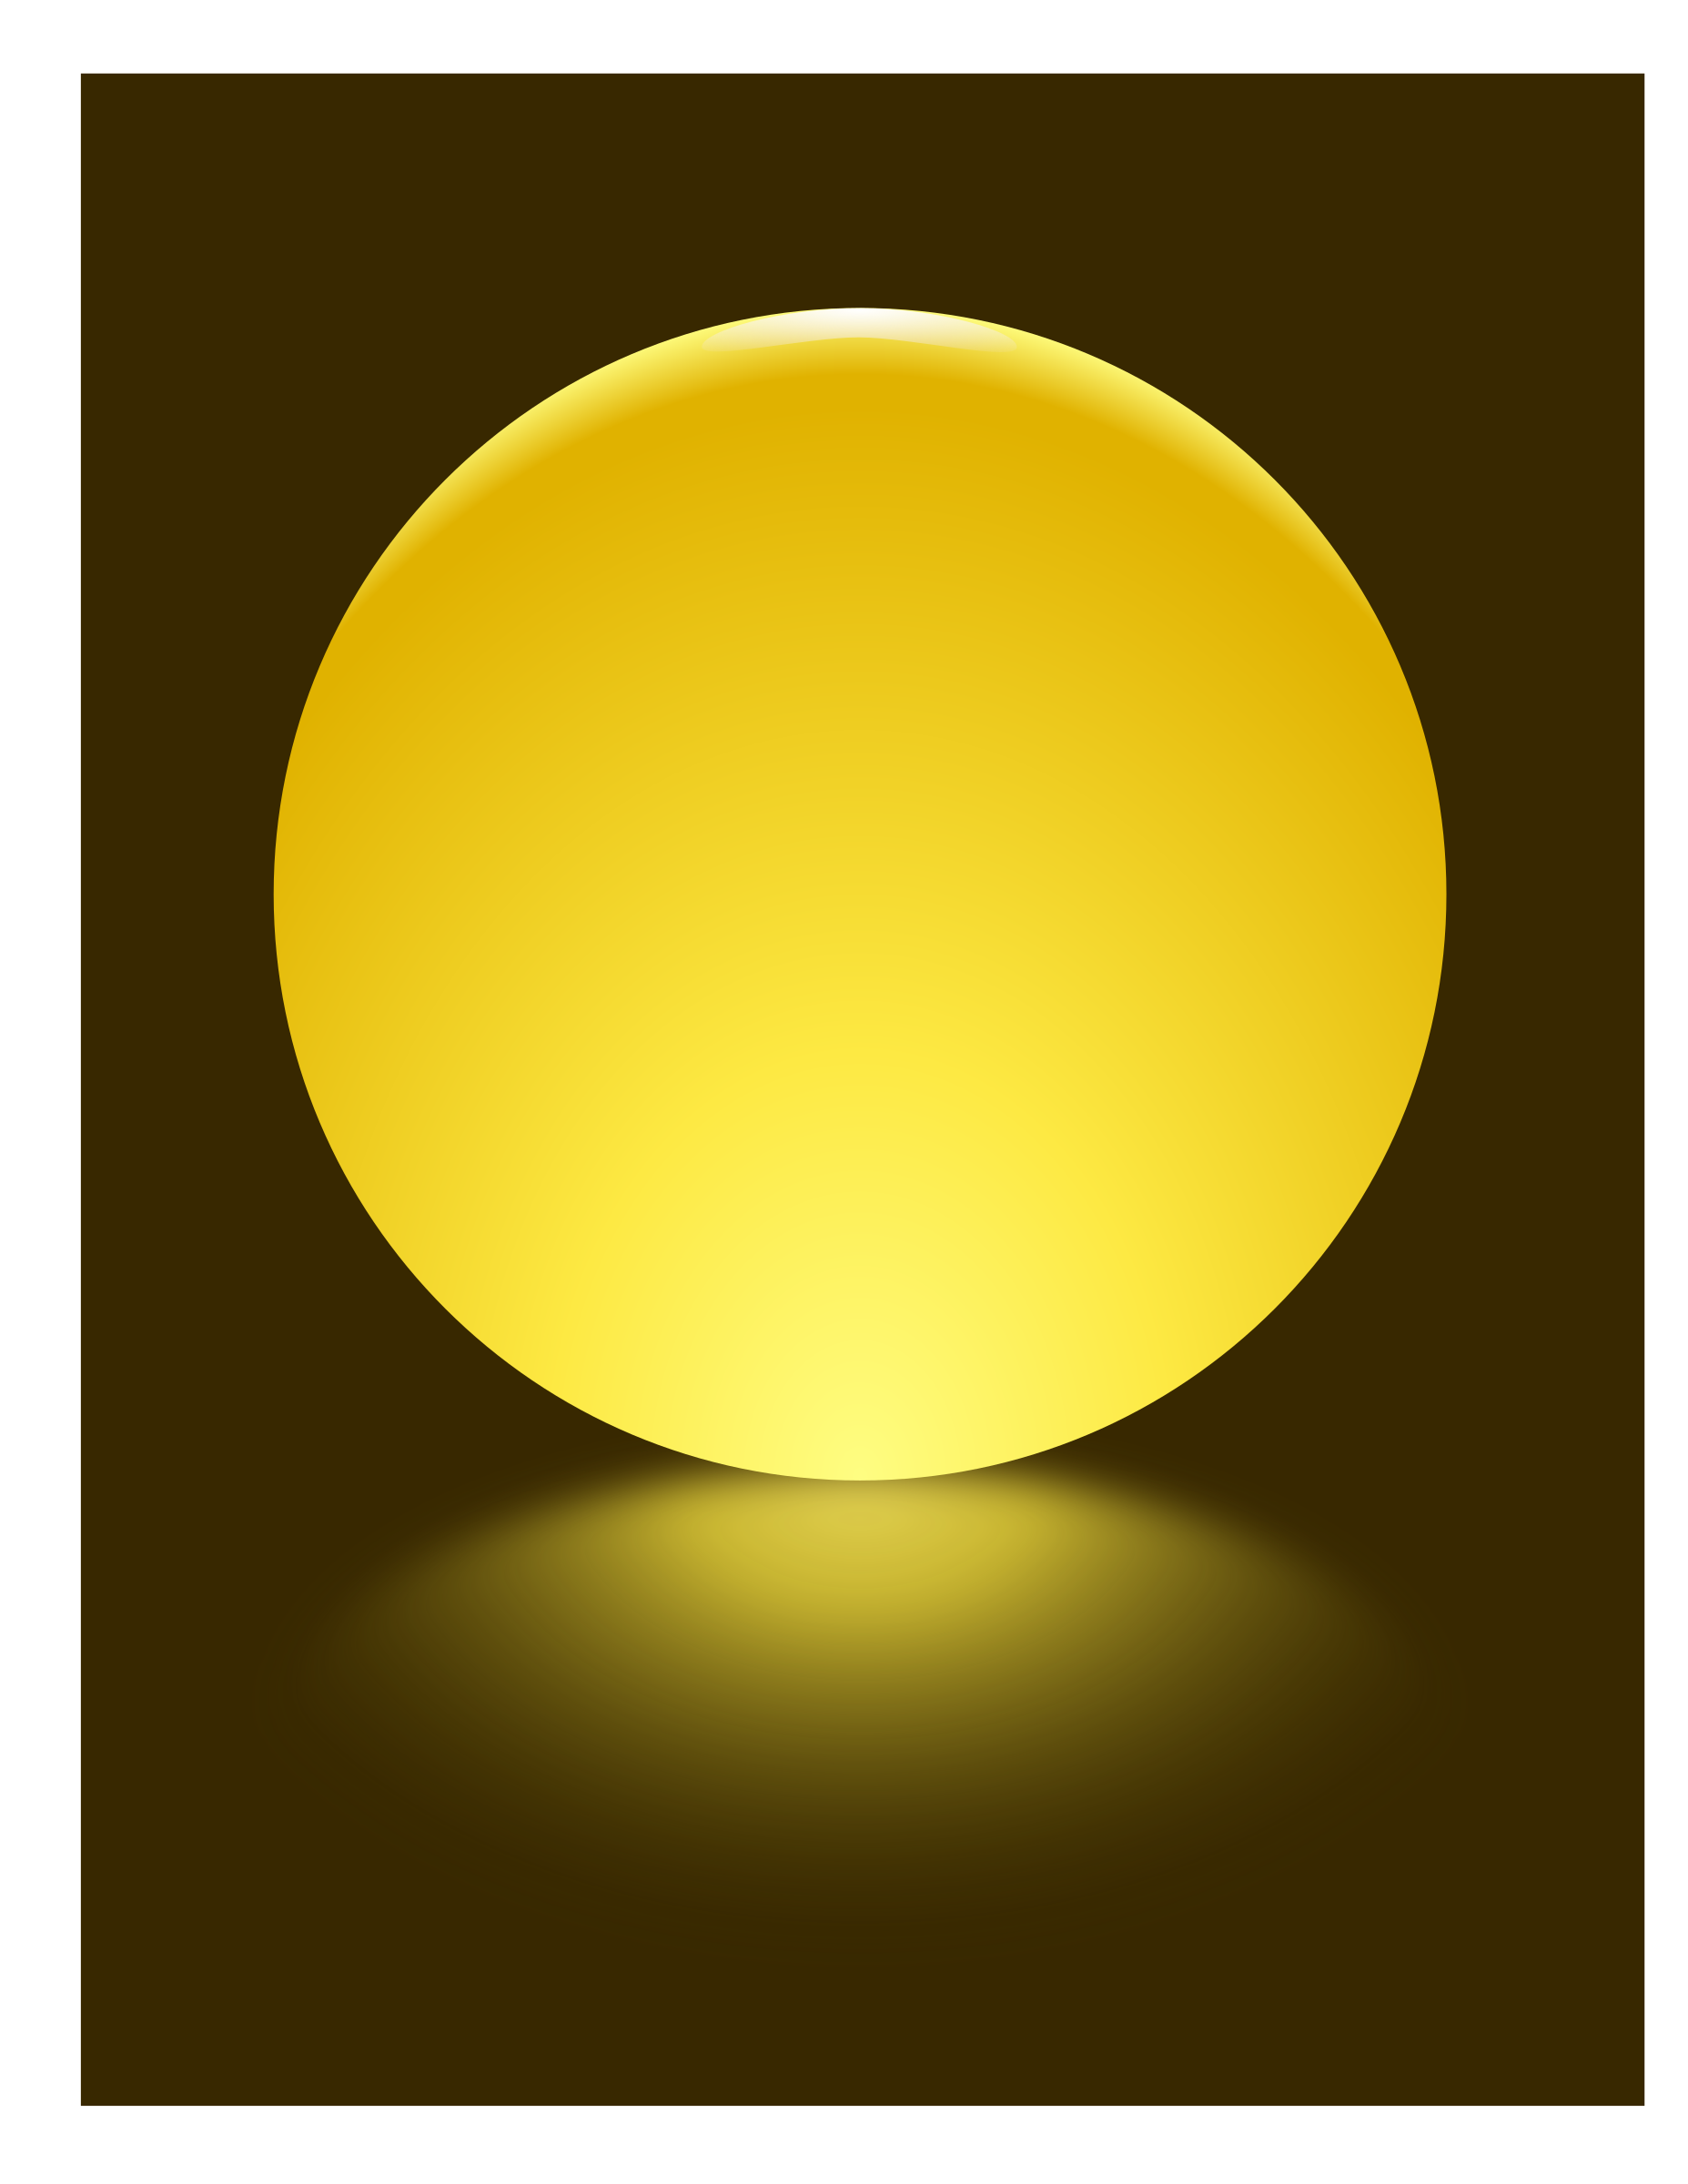 Yellow Sphere Blurred Reflection by djpaul